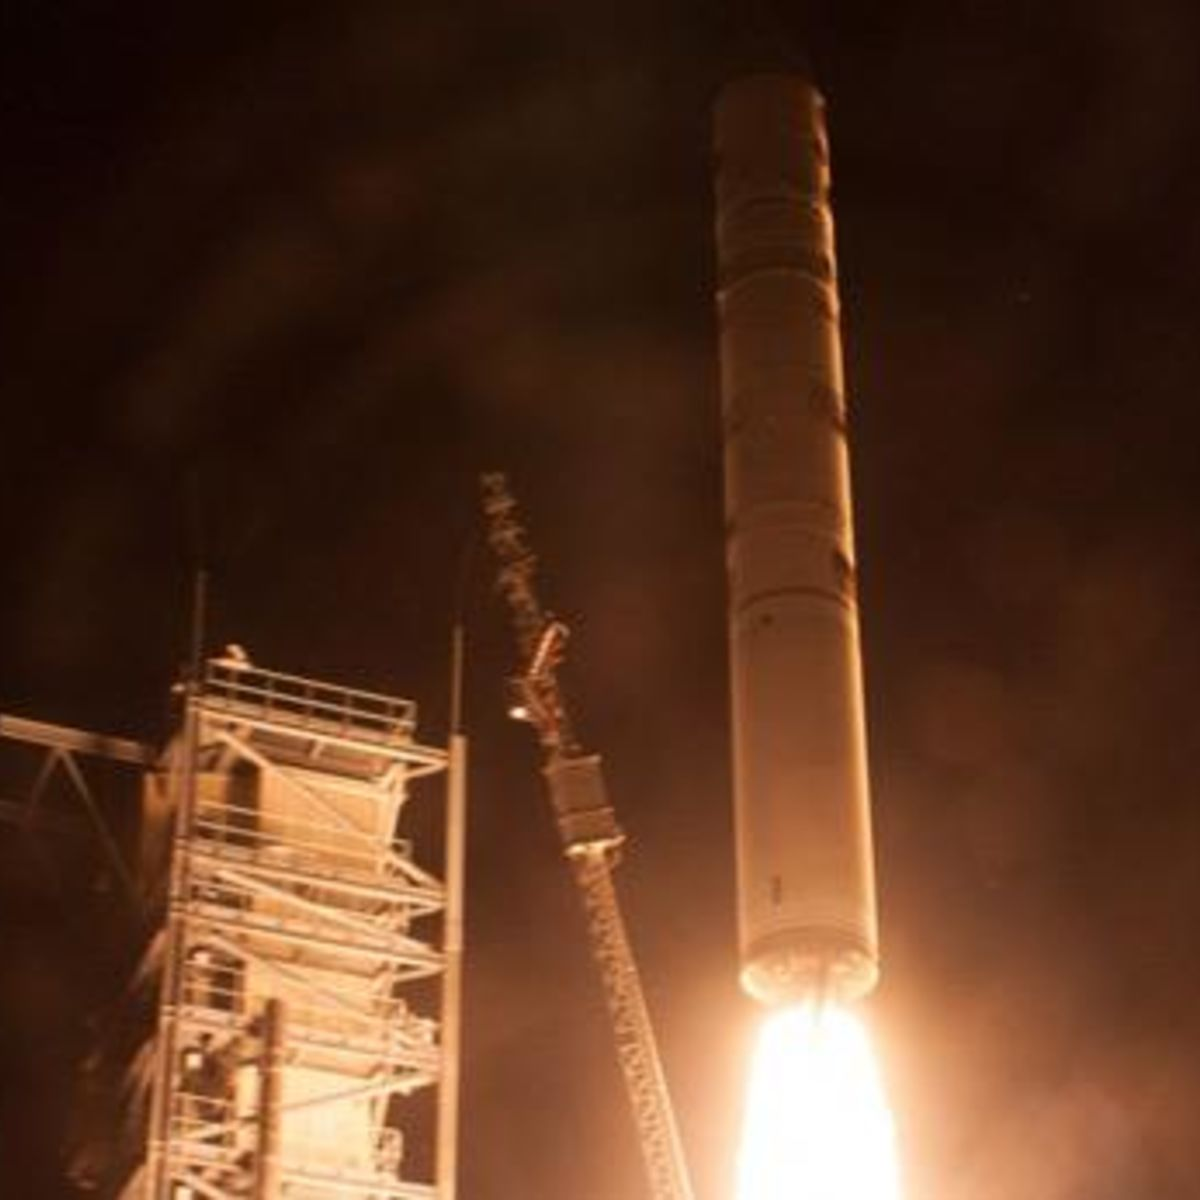 ladee_launch_568.jpg.CROP.rectangle-large.jpg